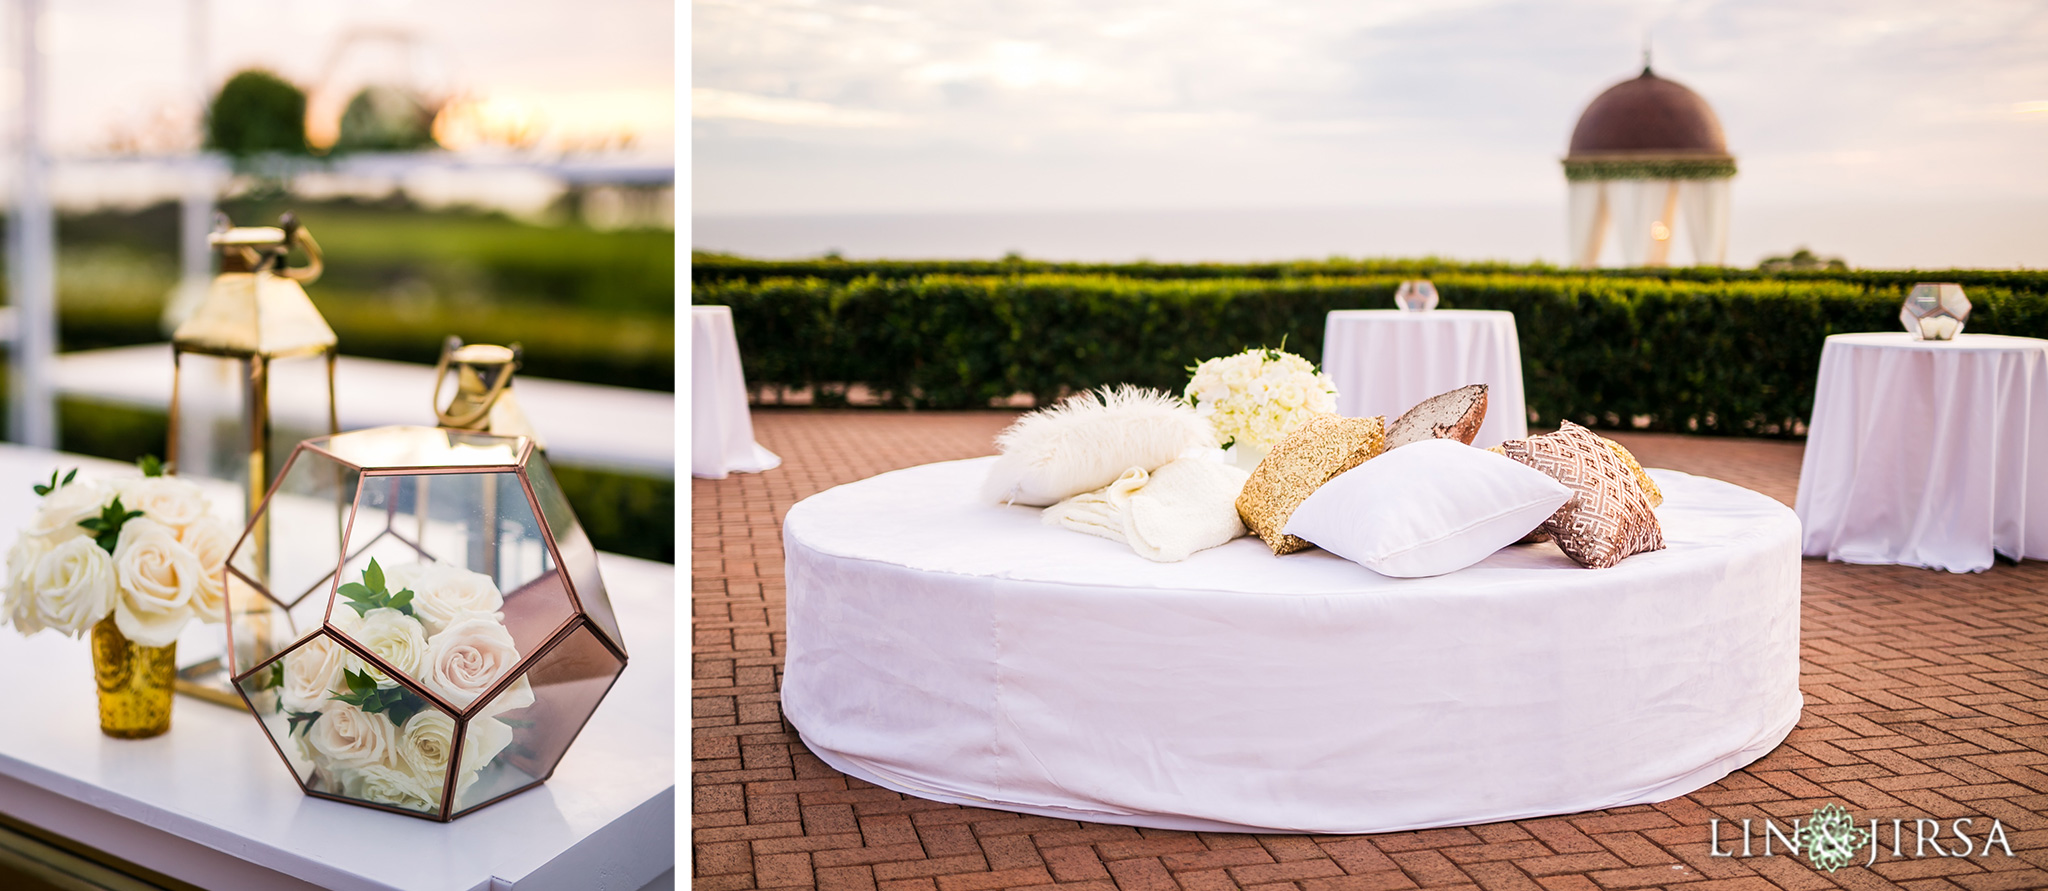 27-pelican-hill-resort-indian-wedding-photographer